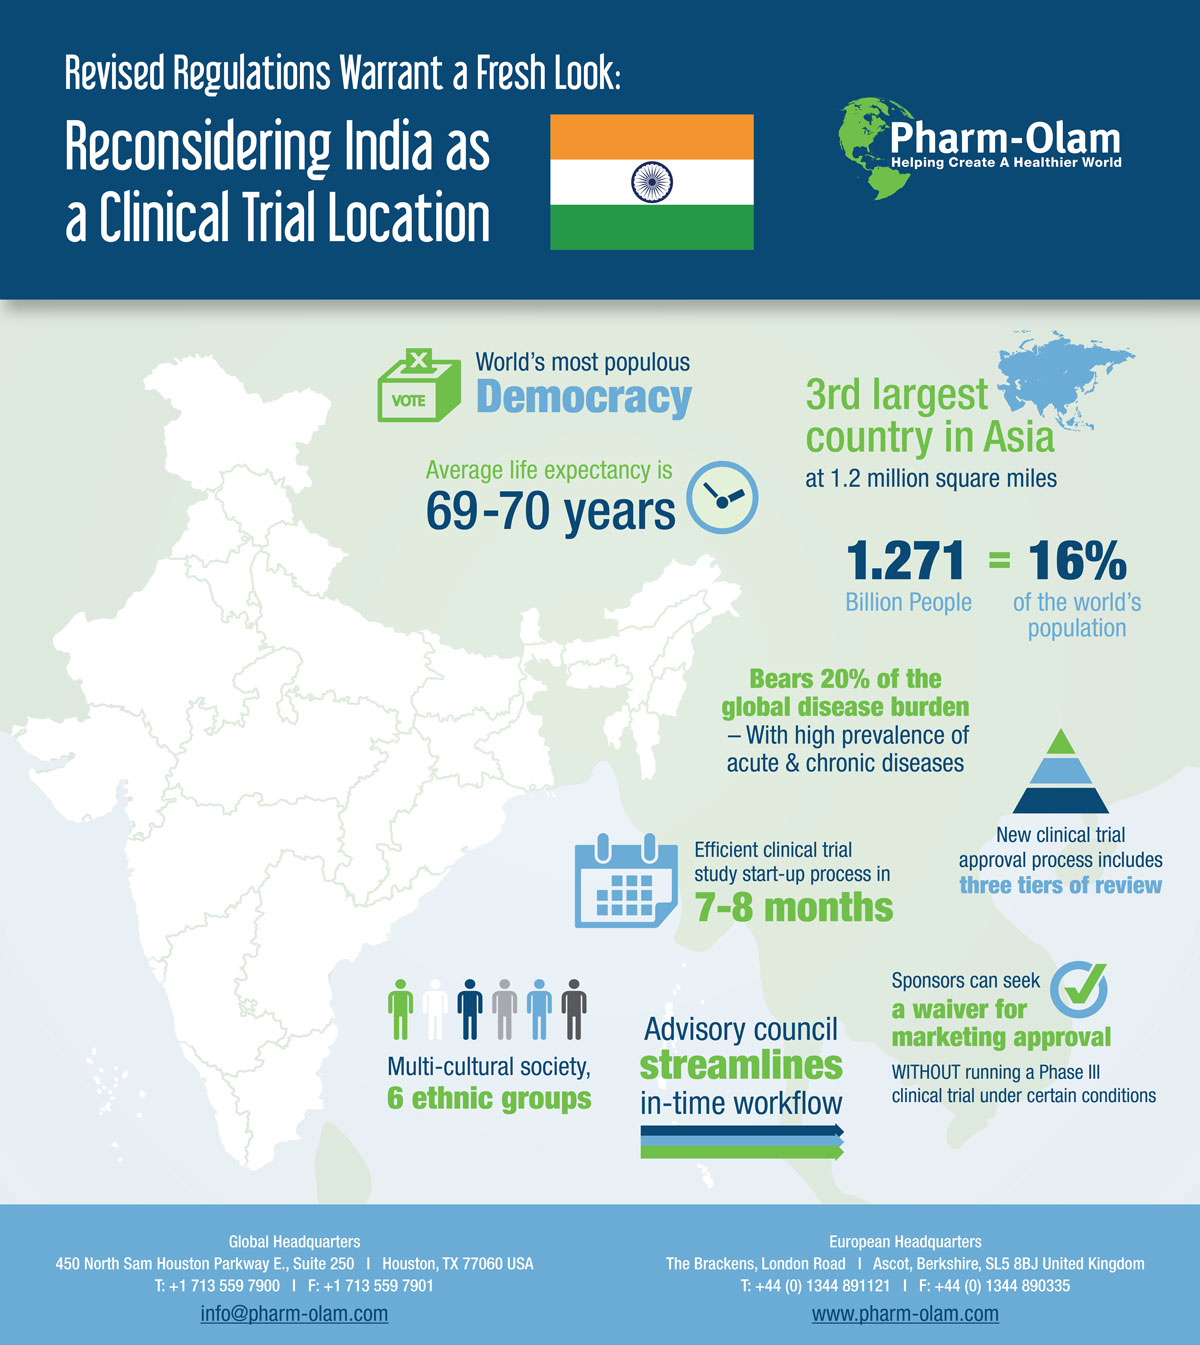 Reconsidering India as a Clinical Trial Location